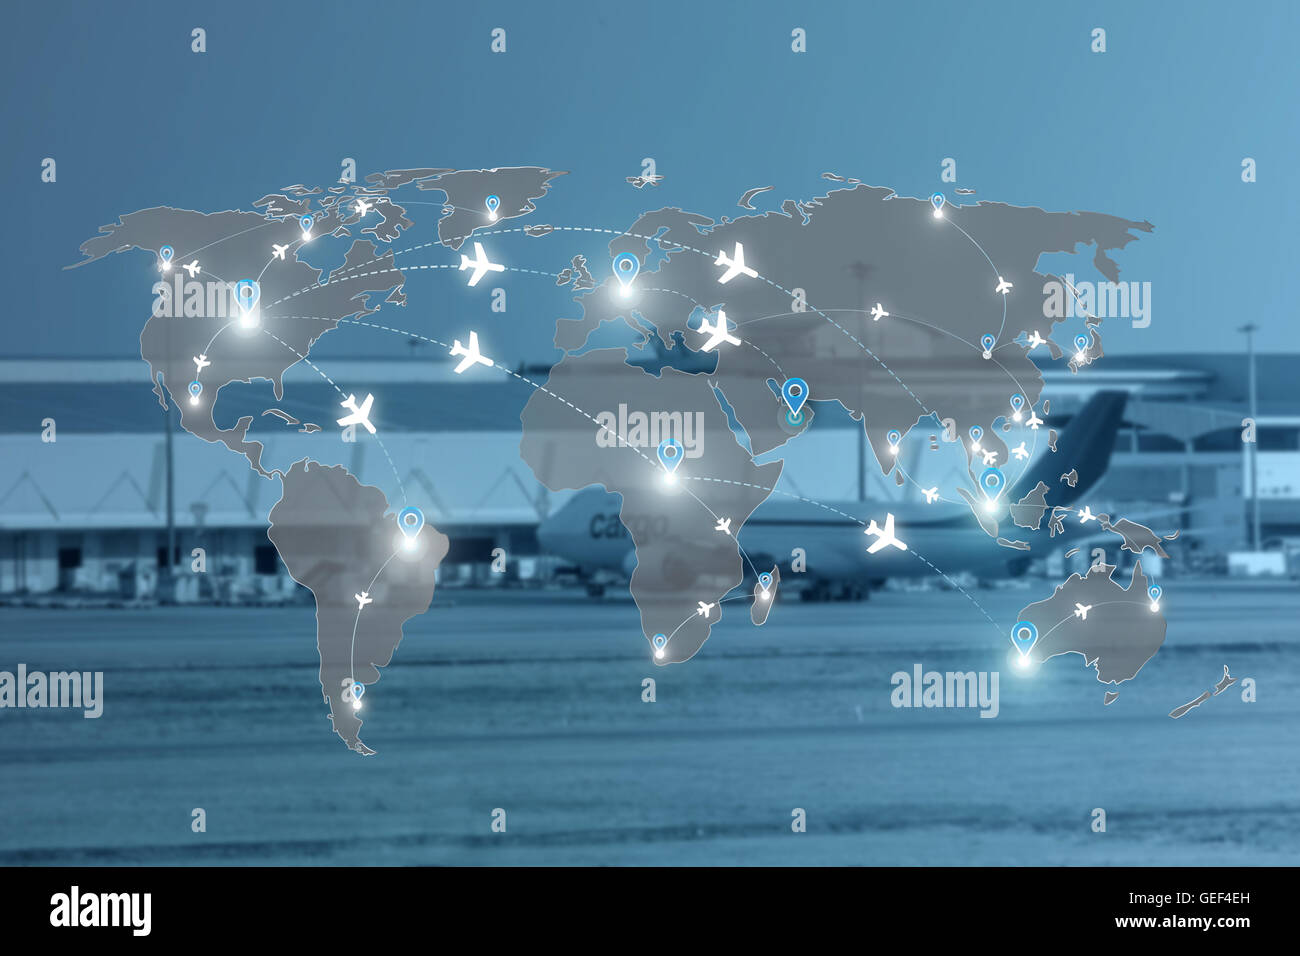 Map of flight routes airplanes network use for global travel, import,export,logistics network concept. - Stock Image